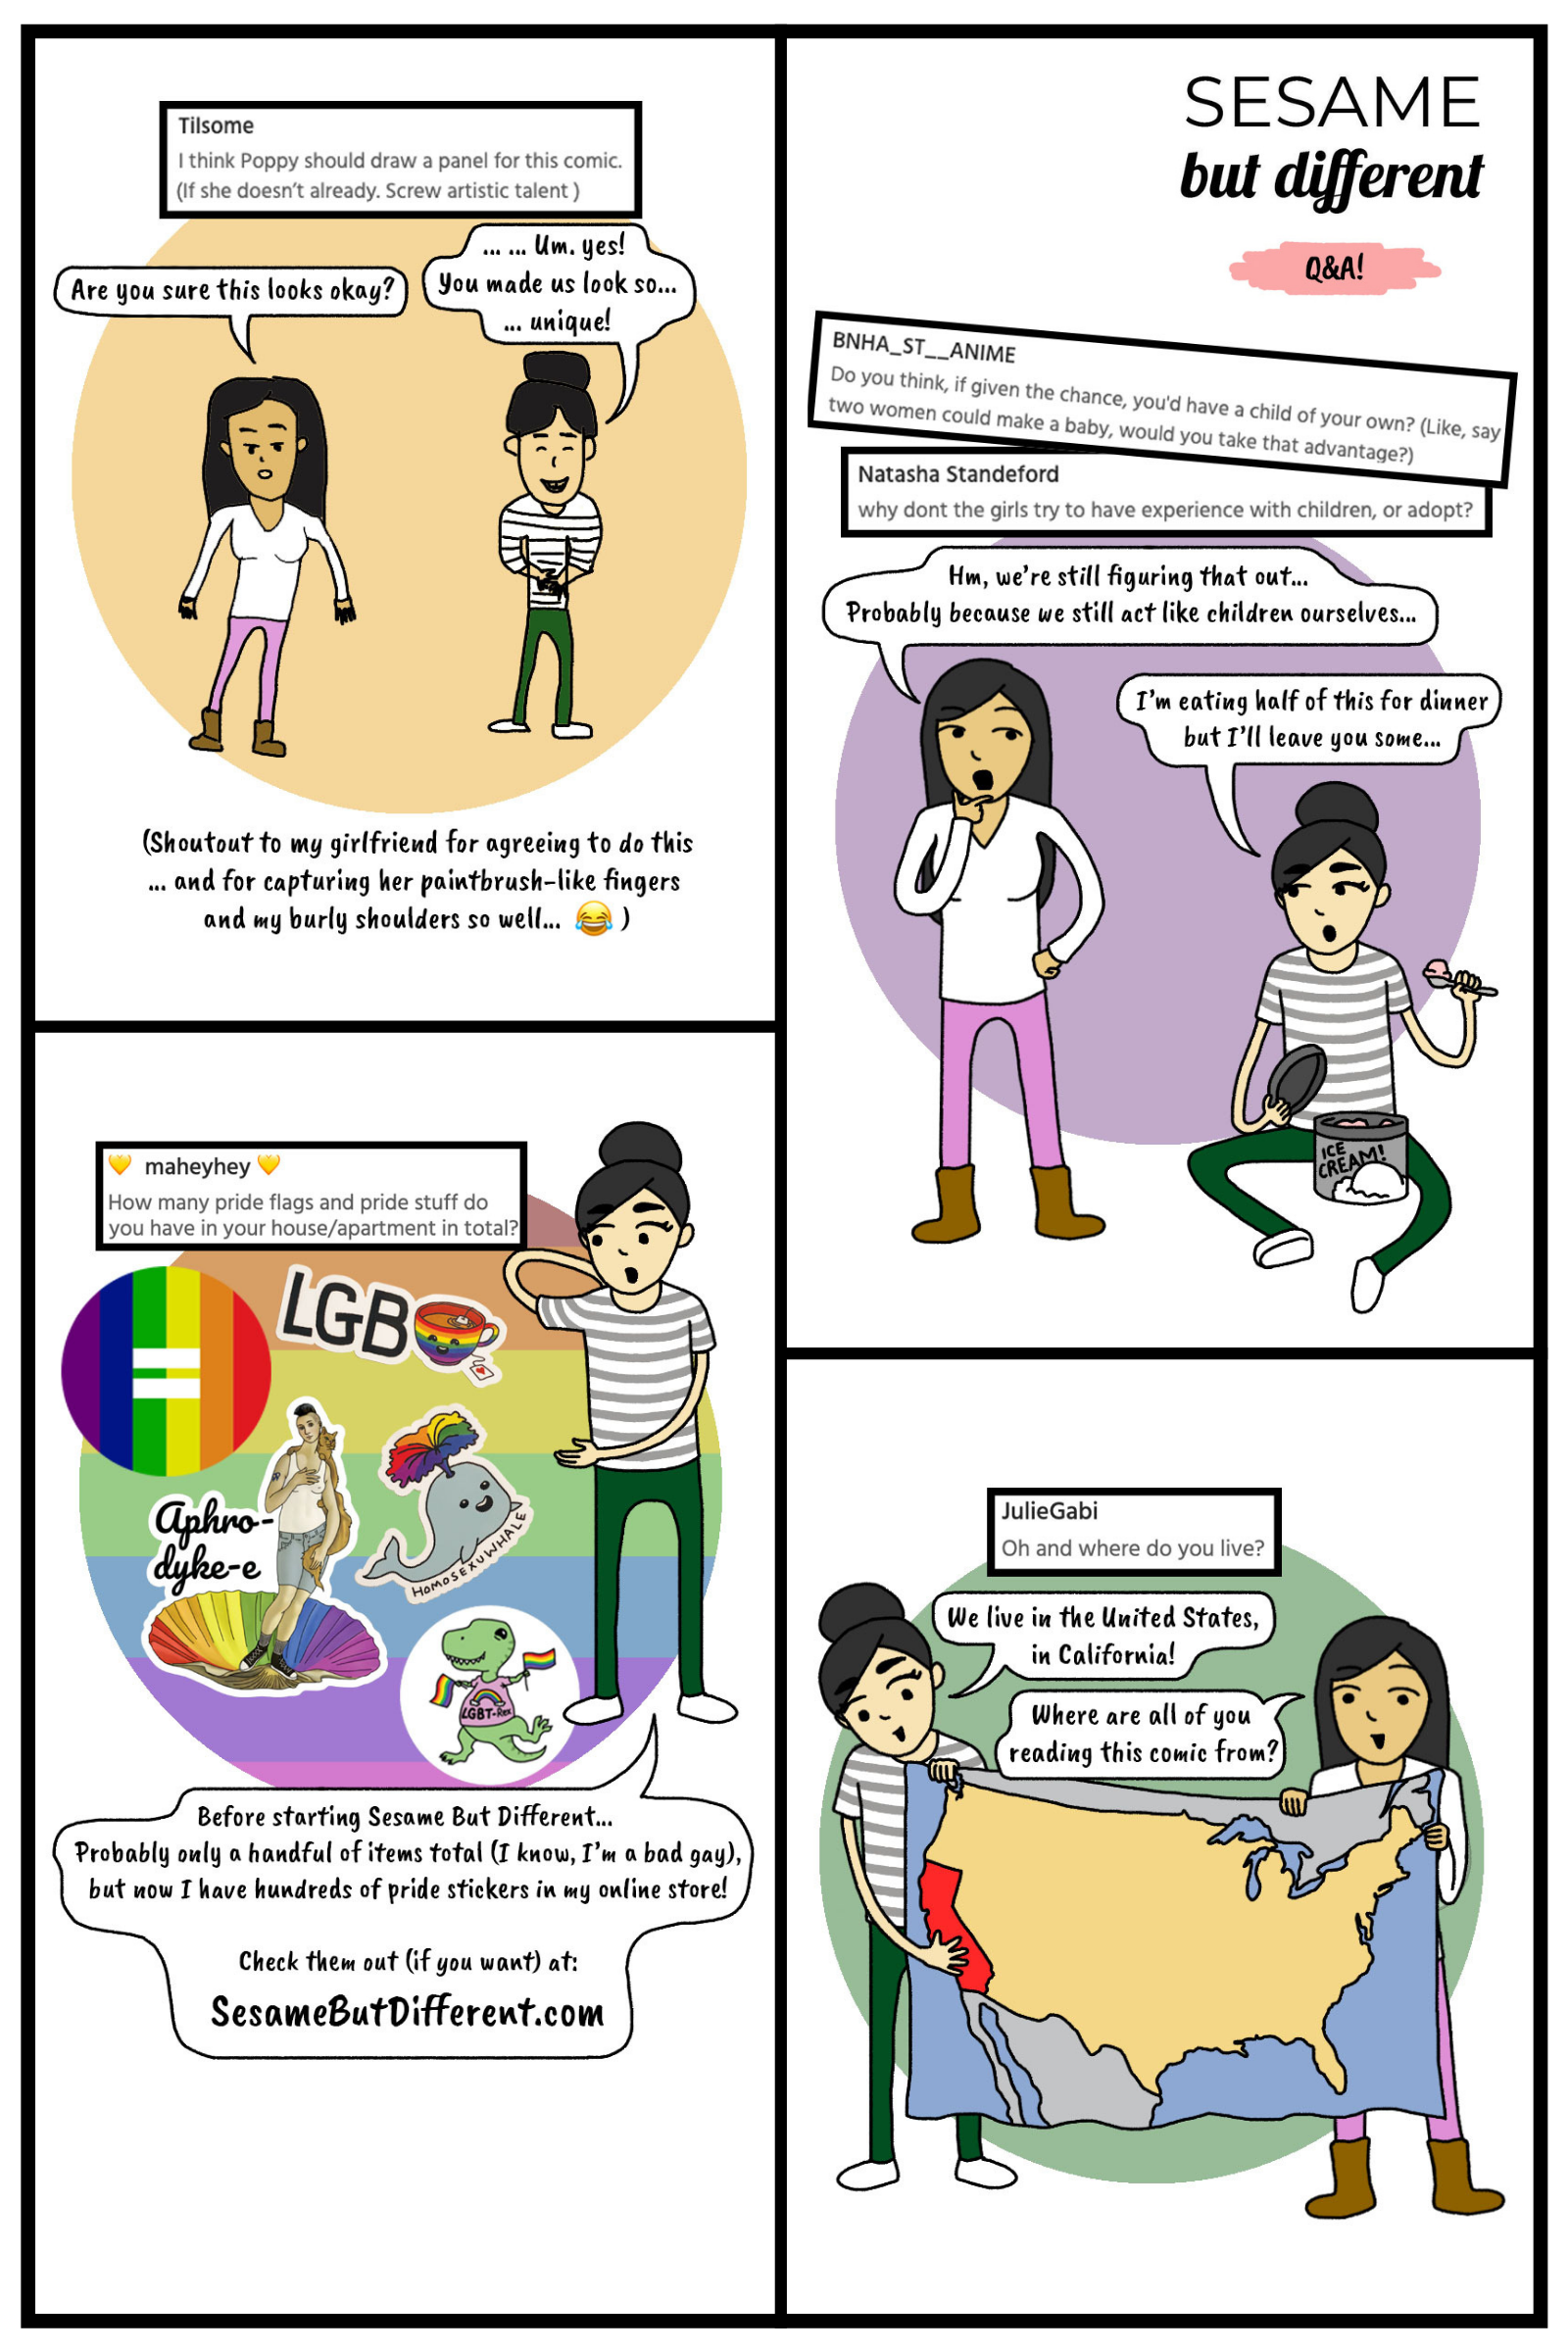 Sesame-But-Different-Lesbian-LGBTQ-Webcomic-Episode 21-Q&A.png